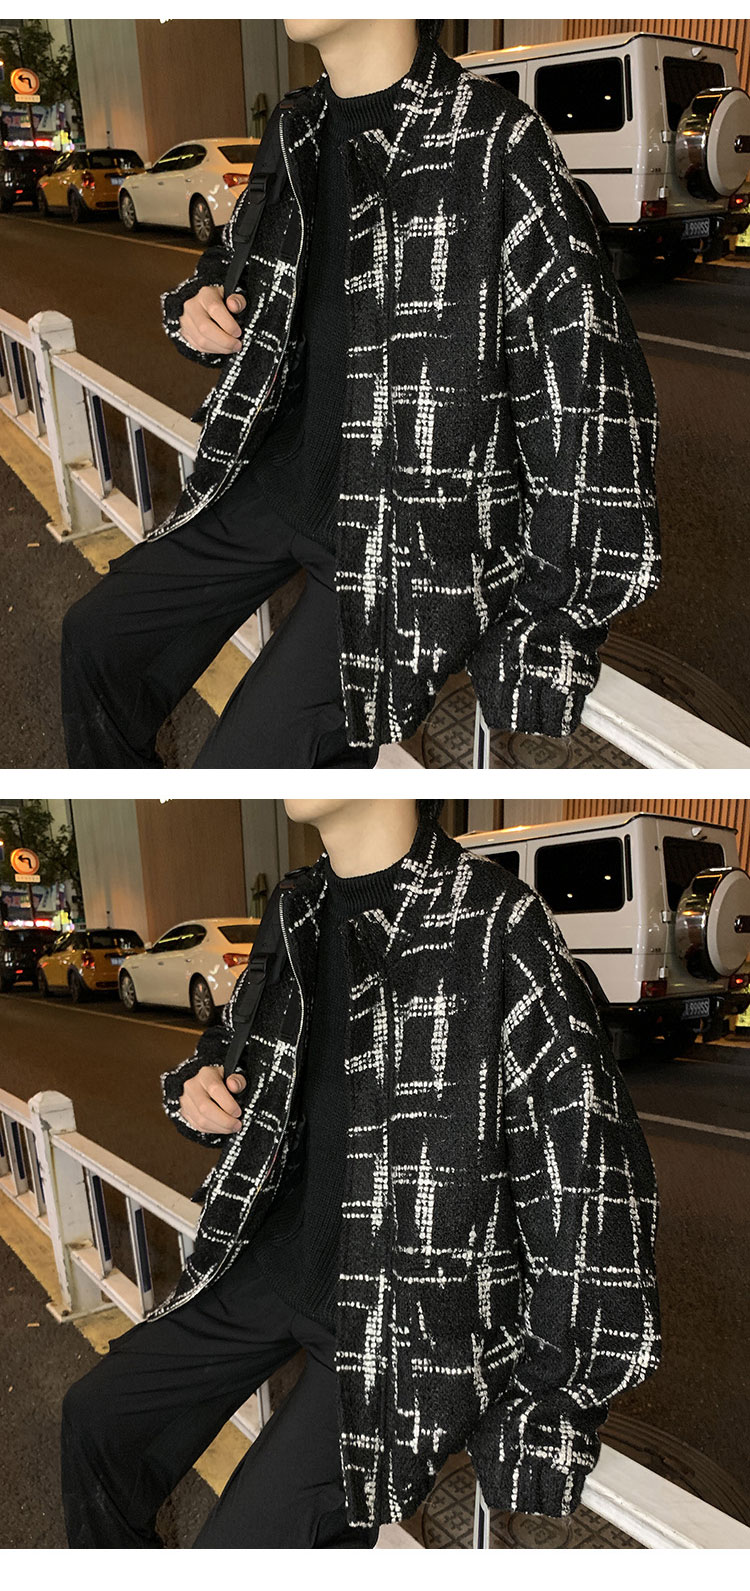 2019 Winter Men Coat Winter Korean Style Thick Streetwear Geometric Lines Design Oversize Peacoat Warm Mens Coats and Jackets